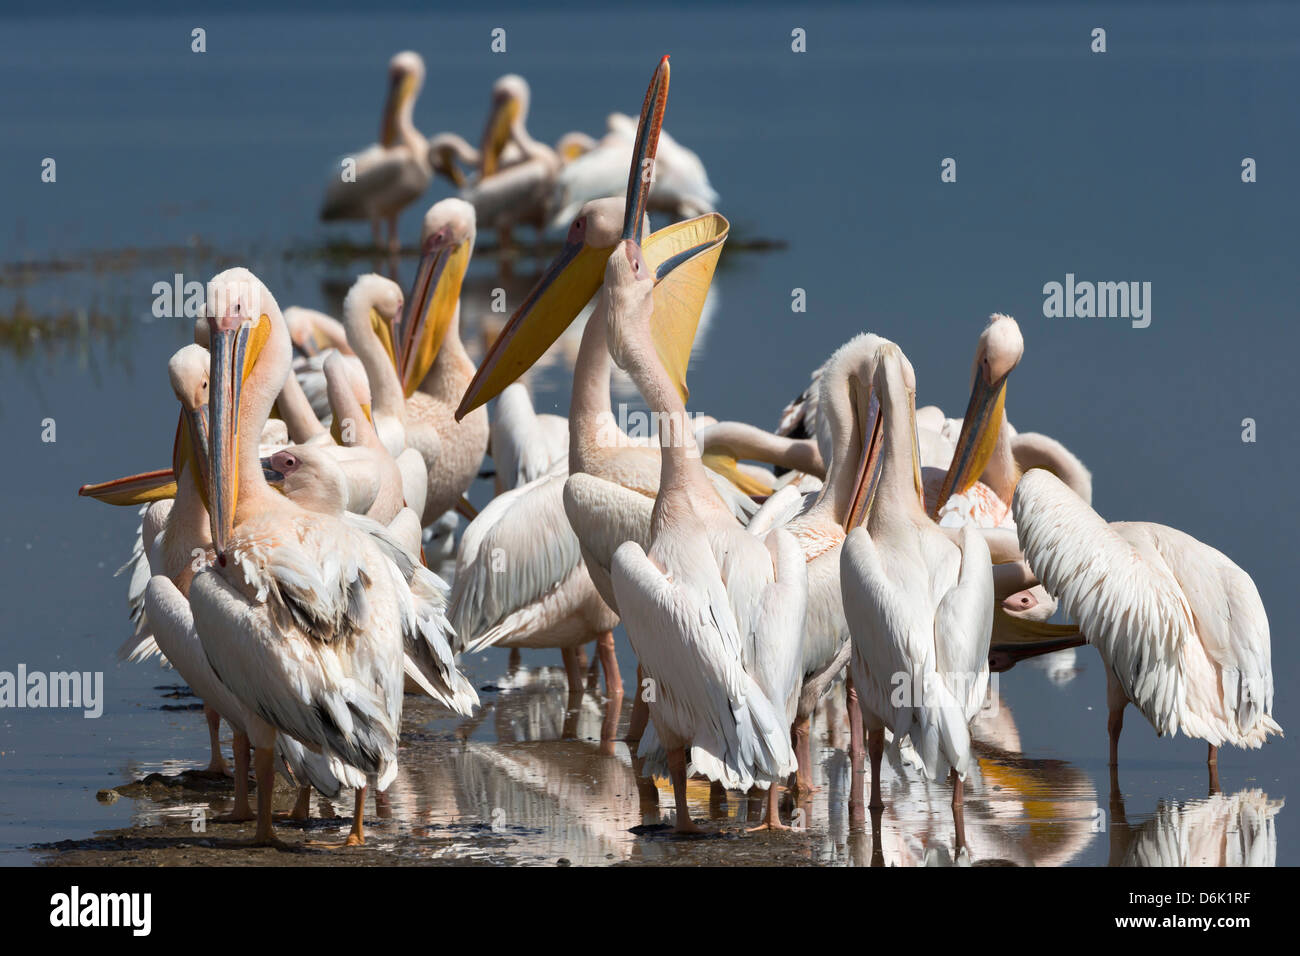 Great white pelicans (Pelecanus onocrotalus), Lake Nakuru National Park, Rift Valley, Kenya, East Africa, Africa - Stock Image